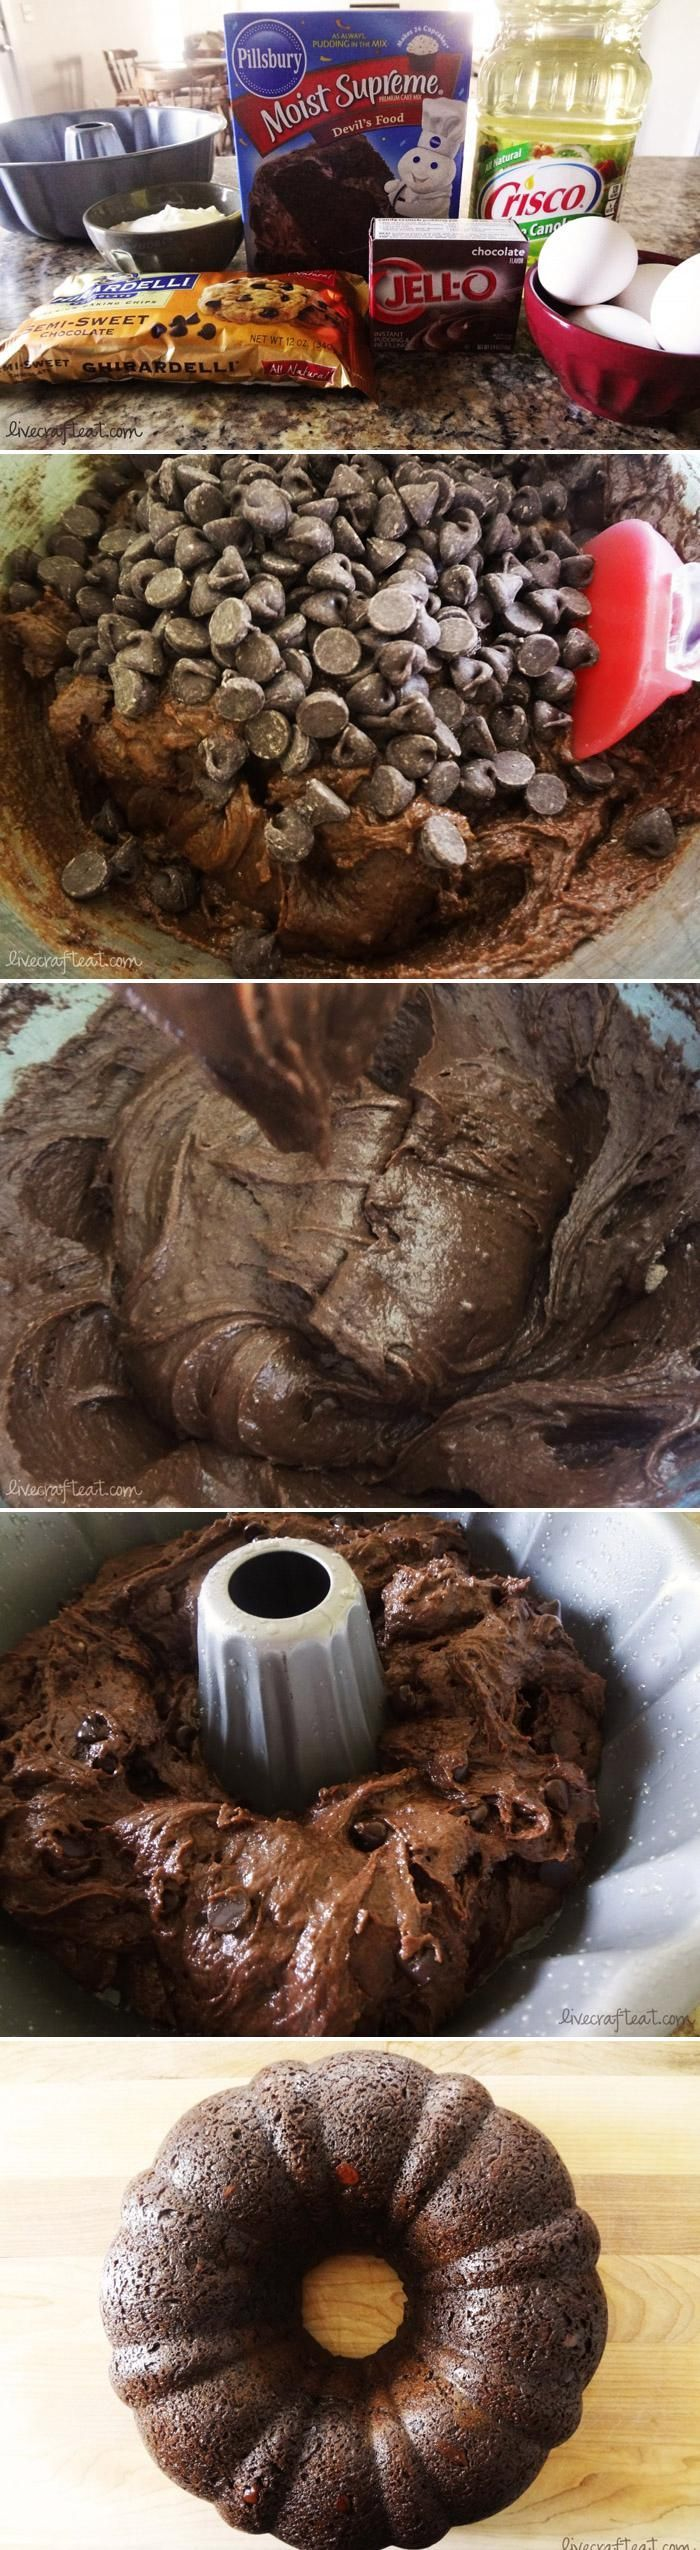 Death by Chocolate Bundt Cake - delicious chocolate dessert recipe!